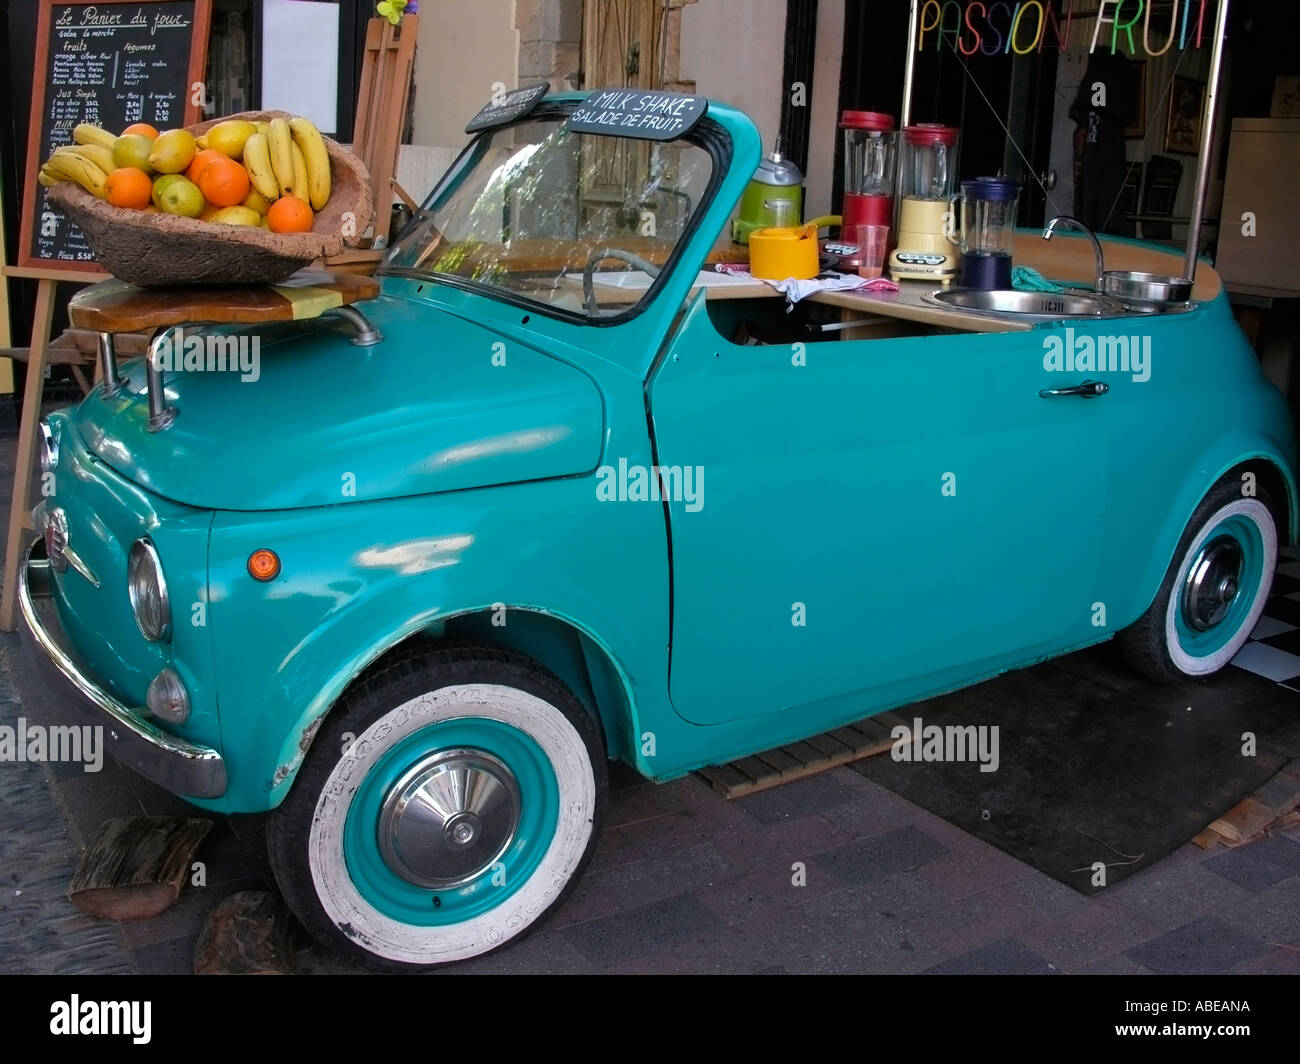 old car fiat 500 in a fruit and juice shop stall stand in. Black Bedroom Furniture Sets. Home Design Ideas